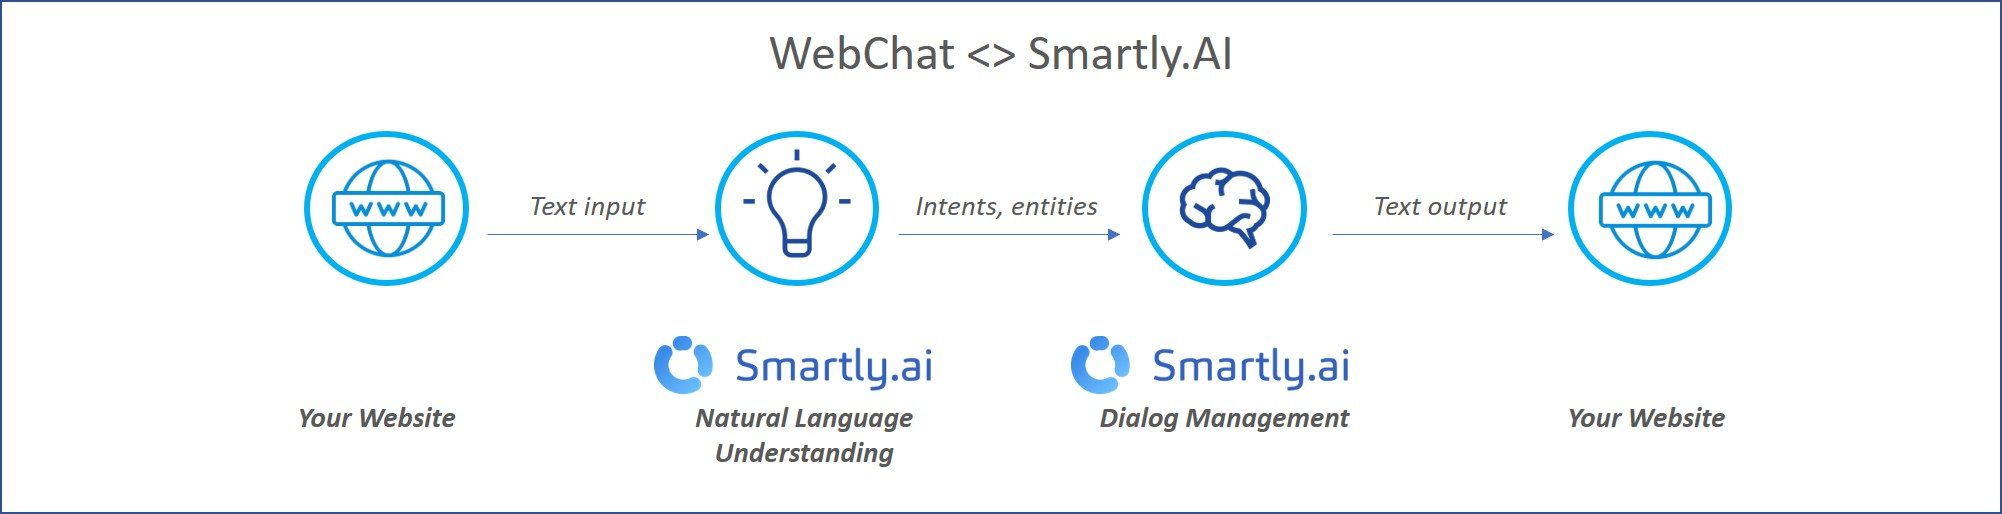 The Webchat integration